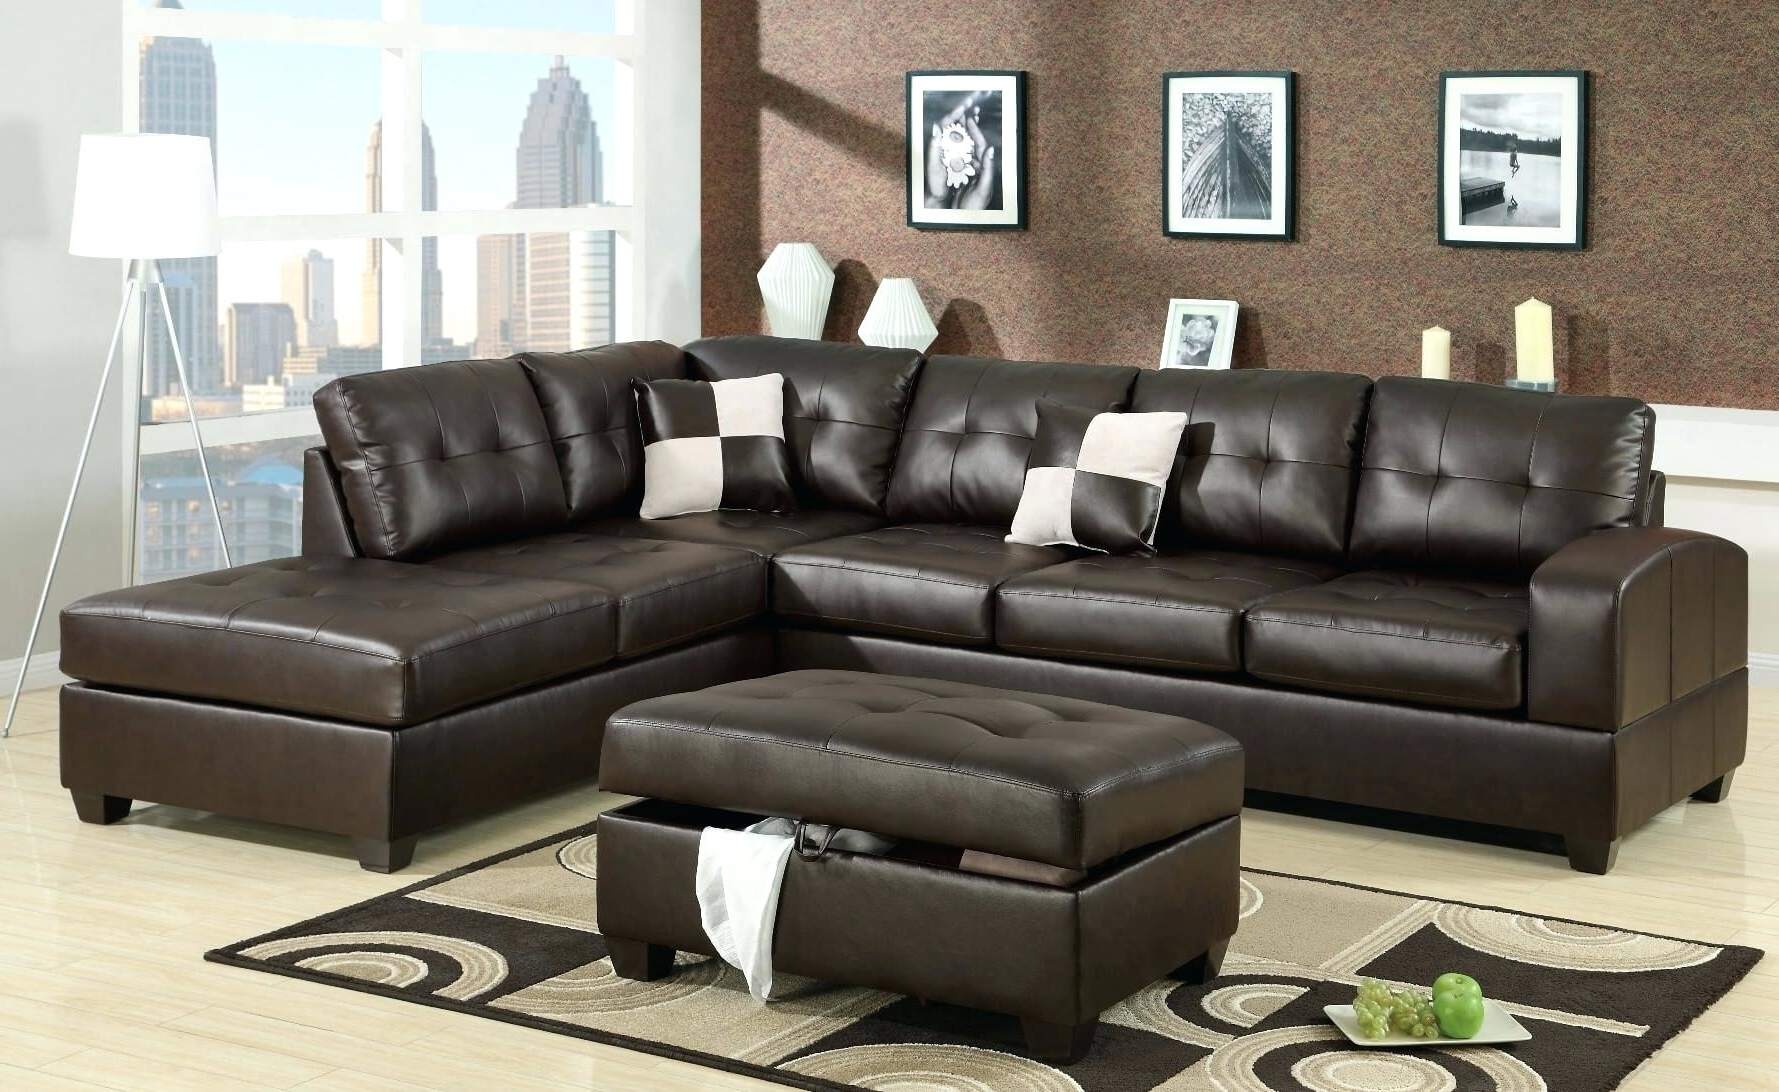 Memphis Tn Sectional Sofas With Best And Newest Leather Sectional Sofas – Stepdesigns (View 11 of 20)